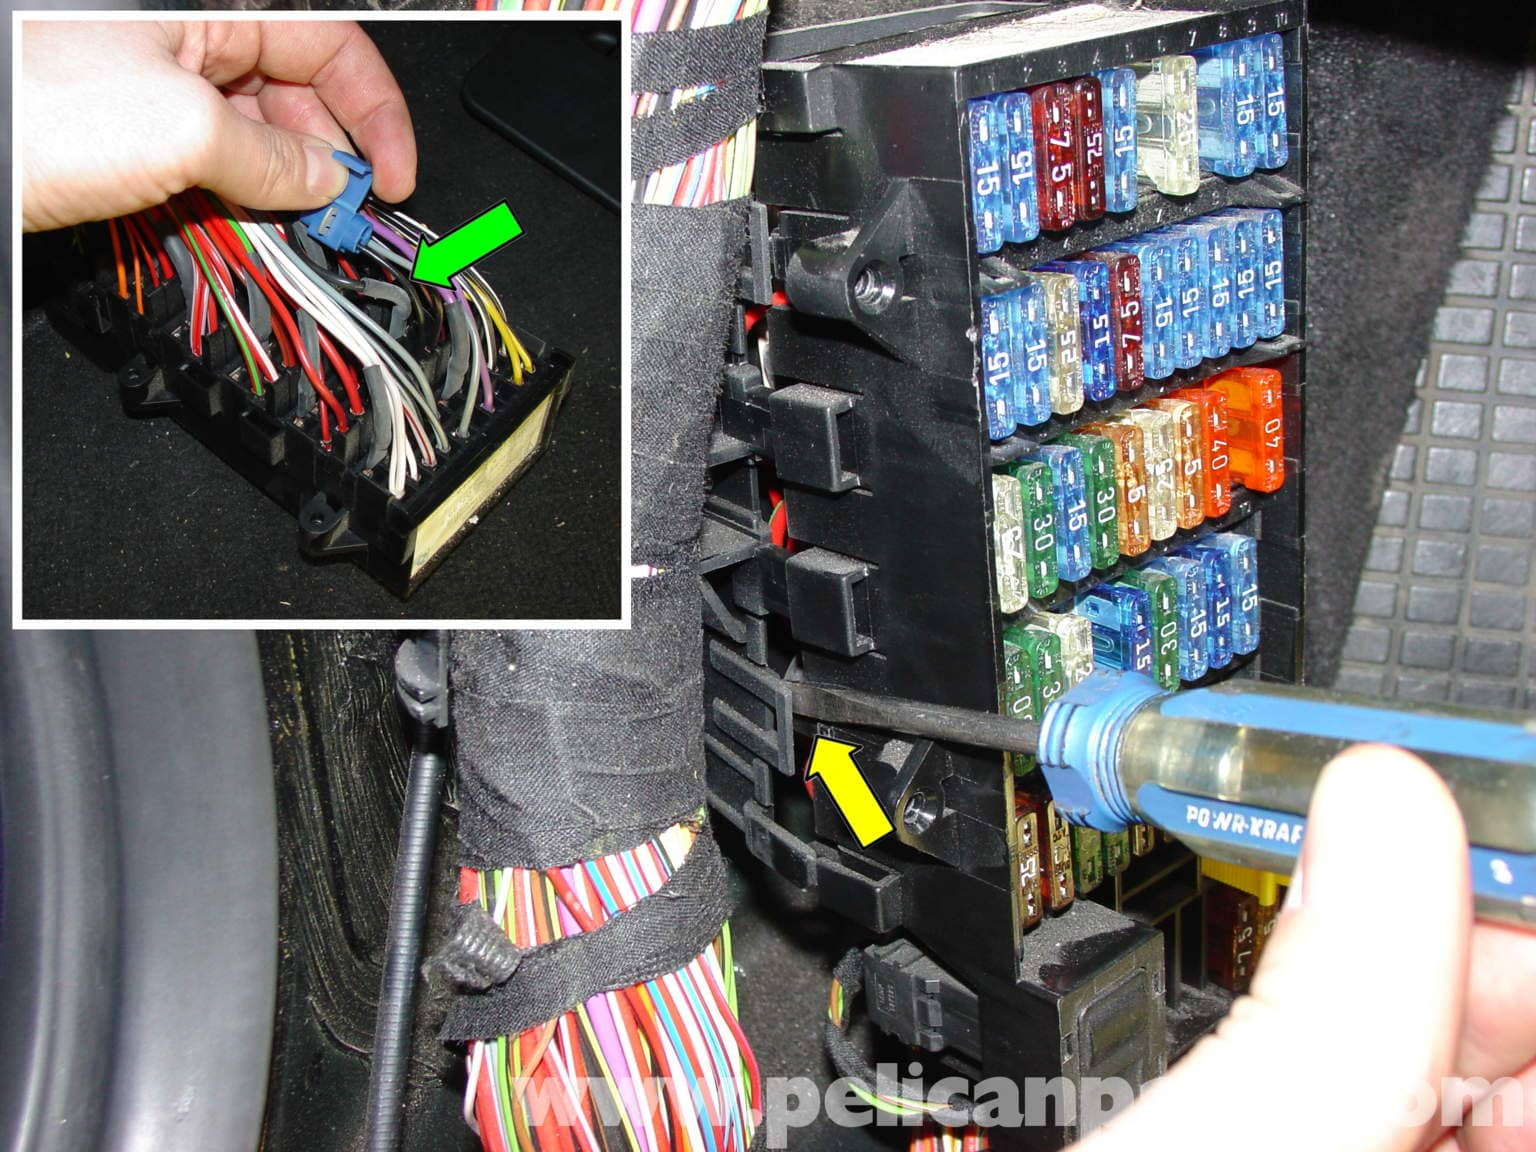 Fabulous Porsche Cruise Control Diagram Wiring Library Wiring Digital Resources Indicompassionincorg